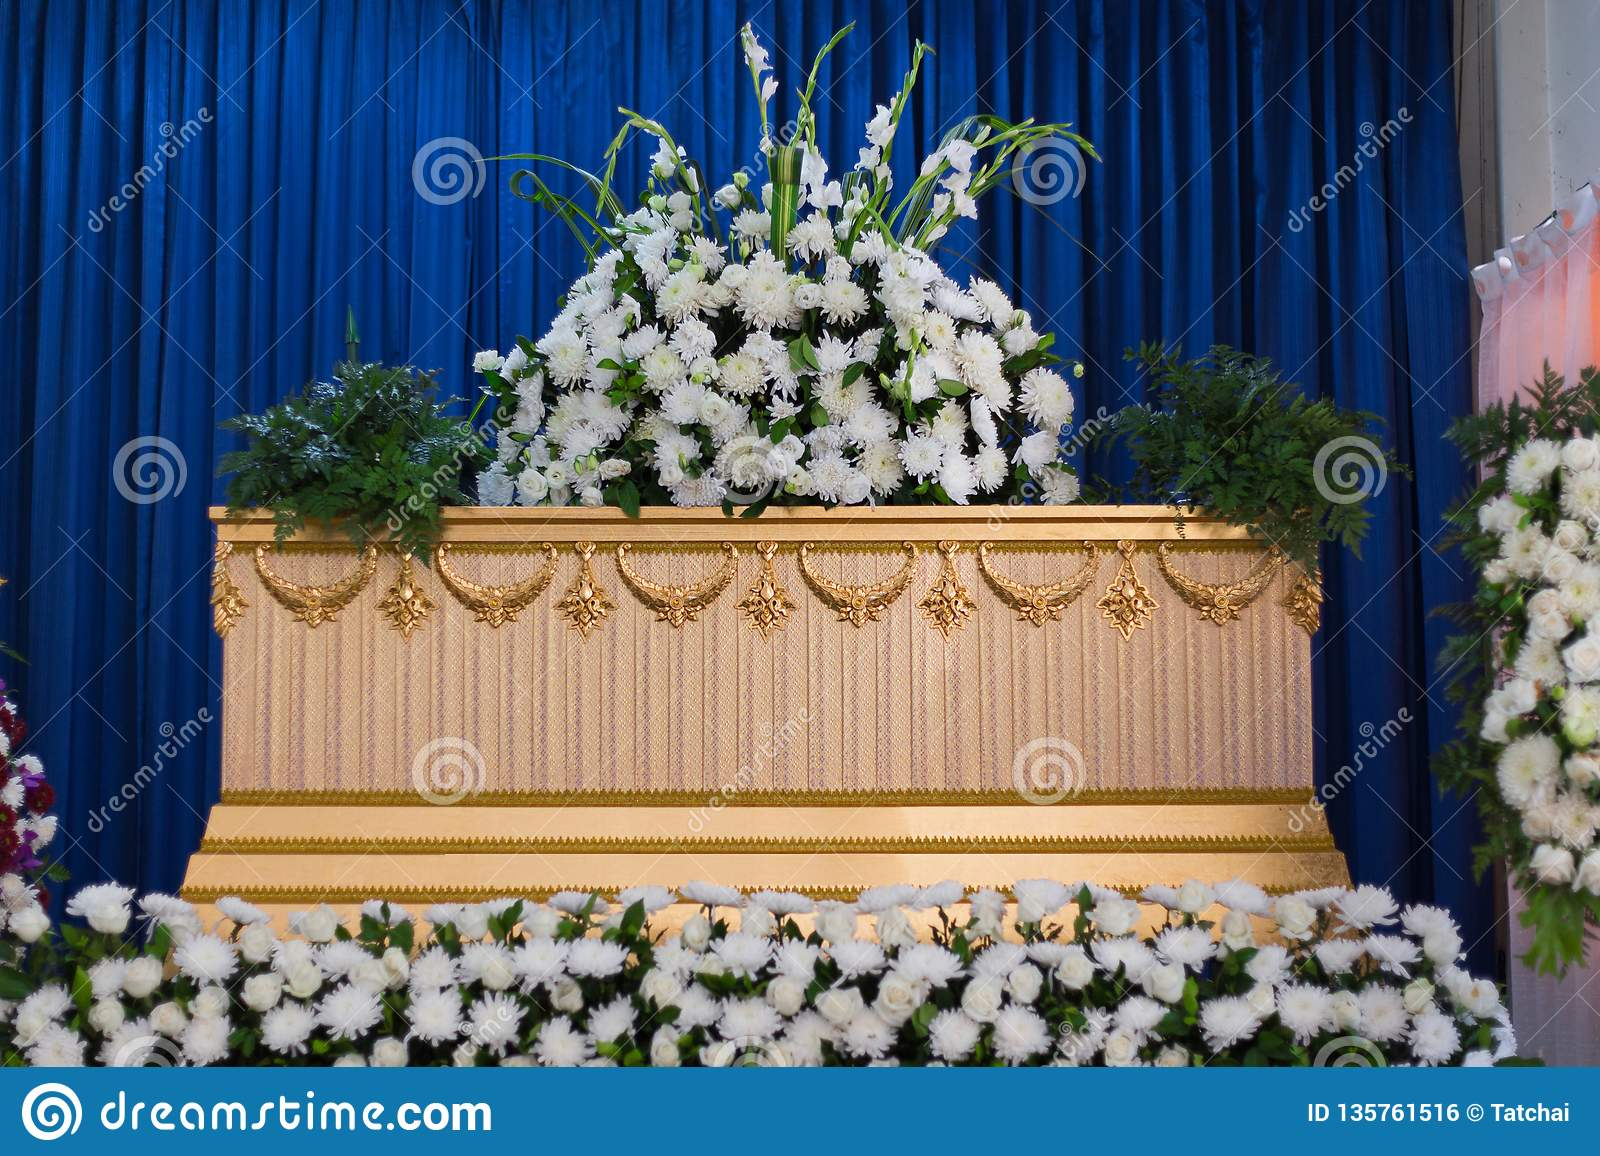 Coffin in Crematory